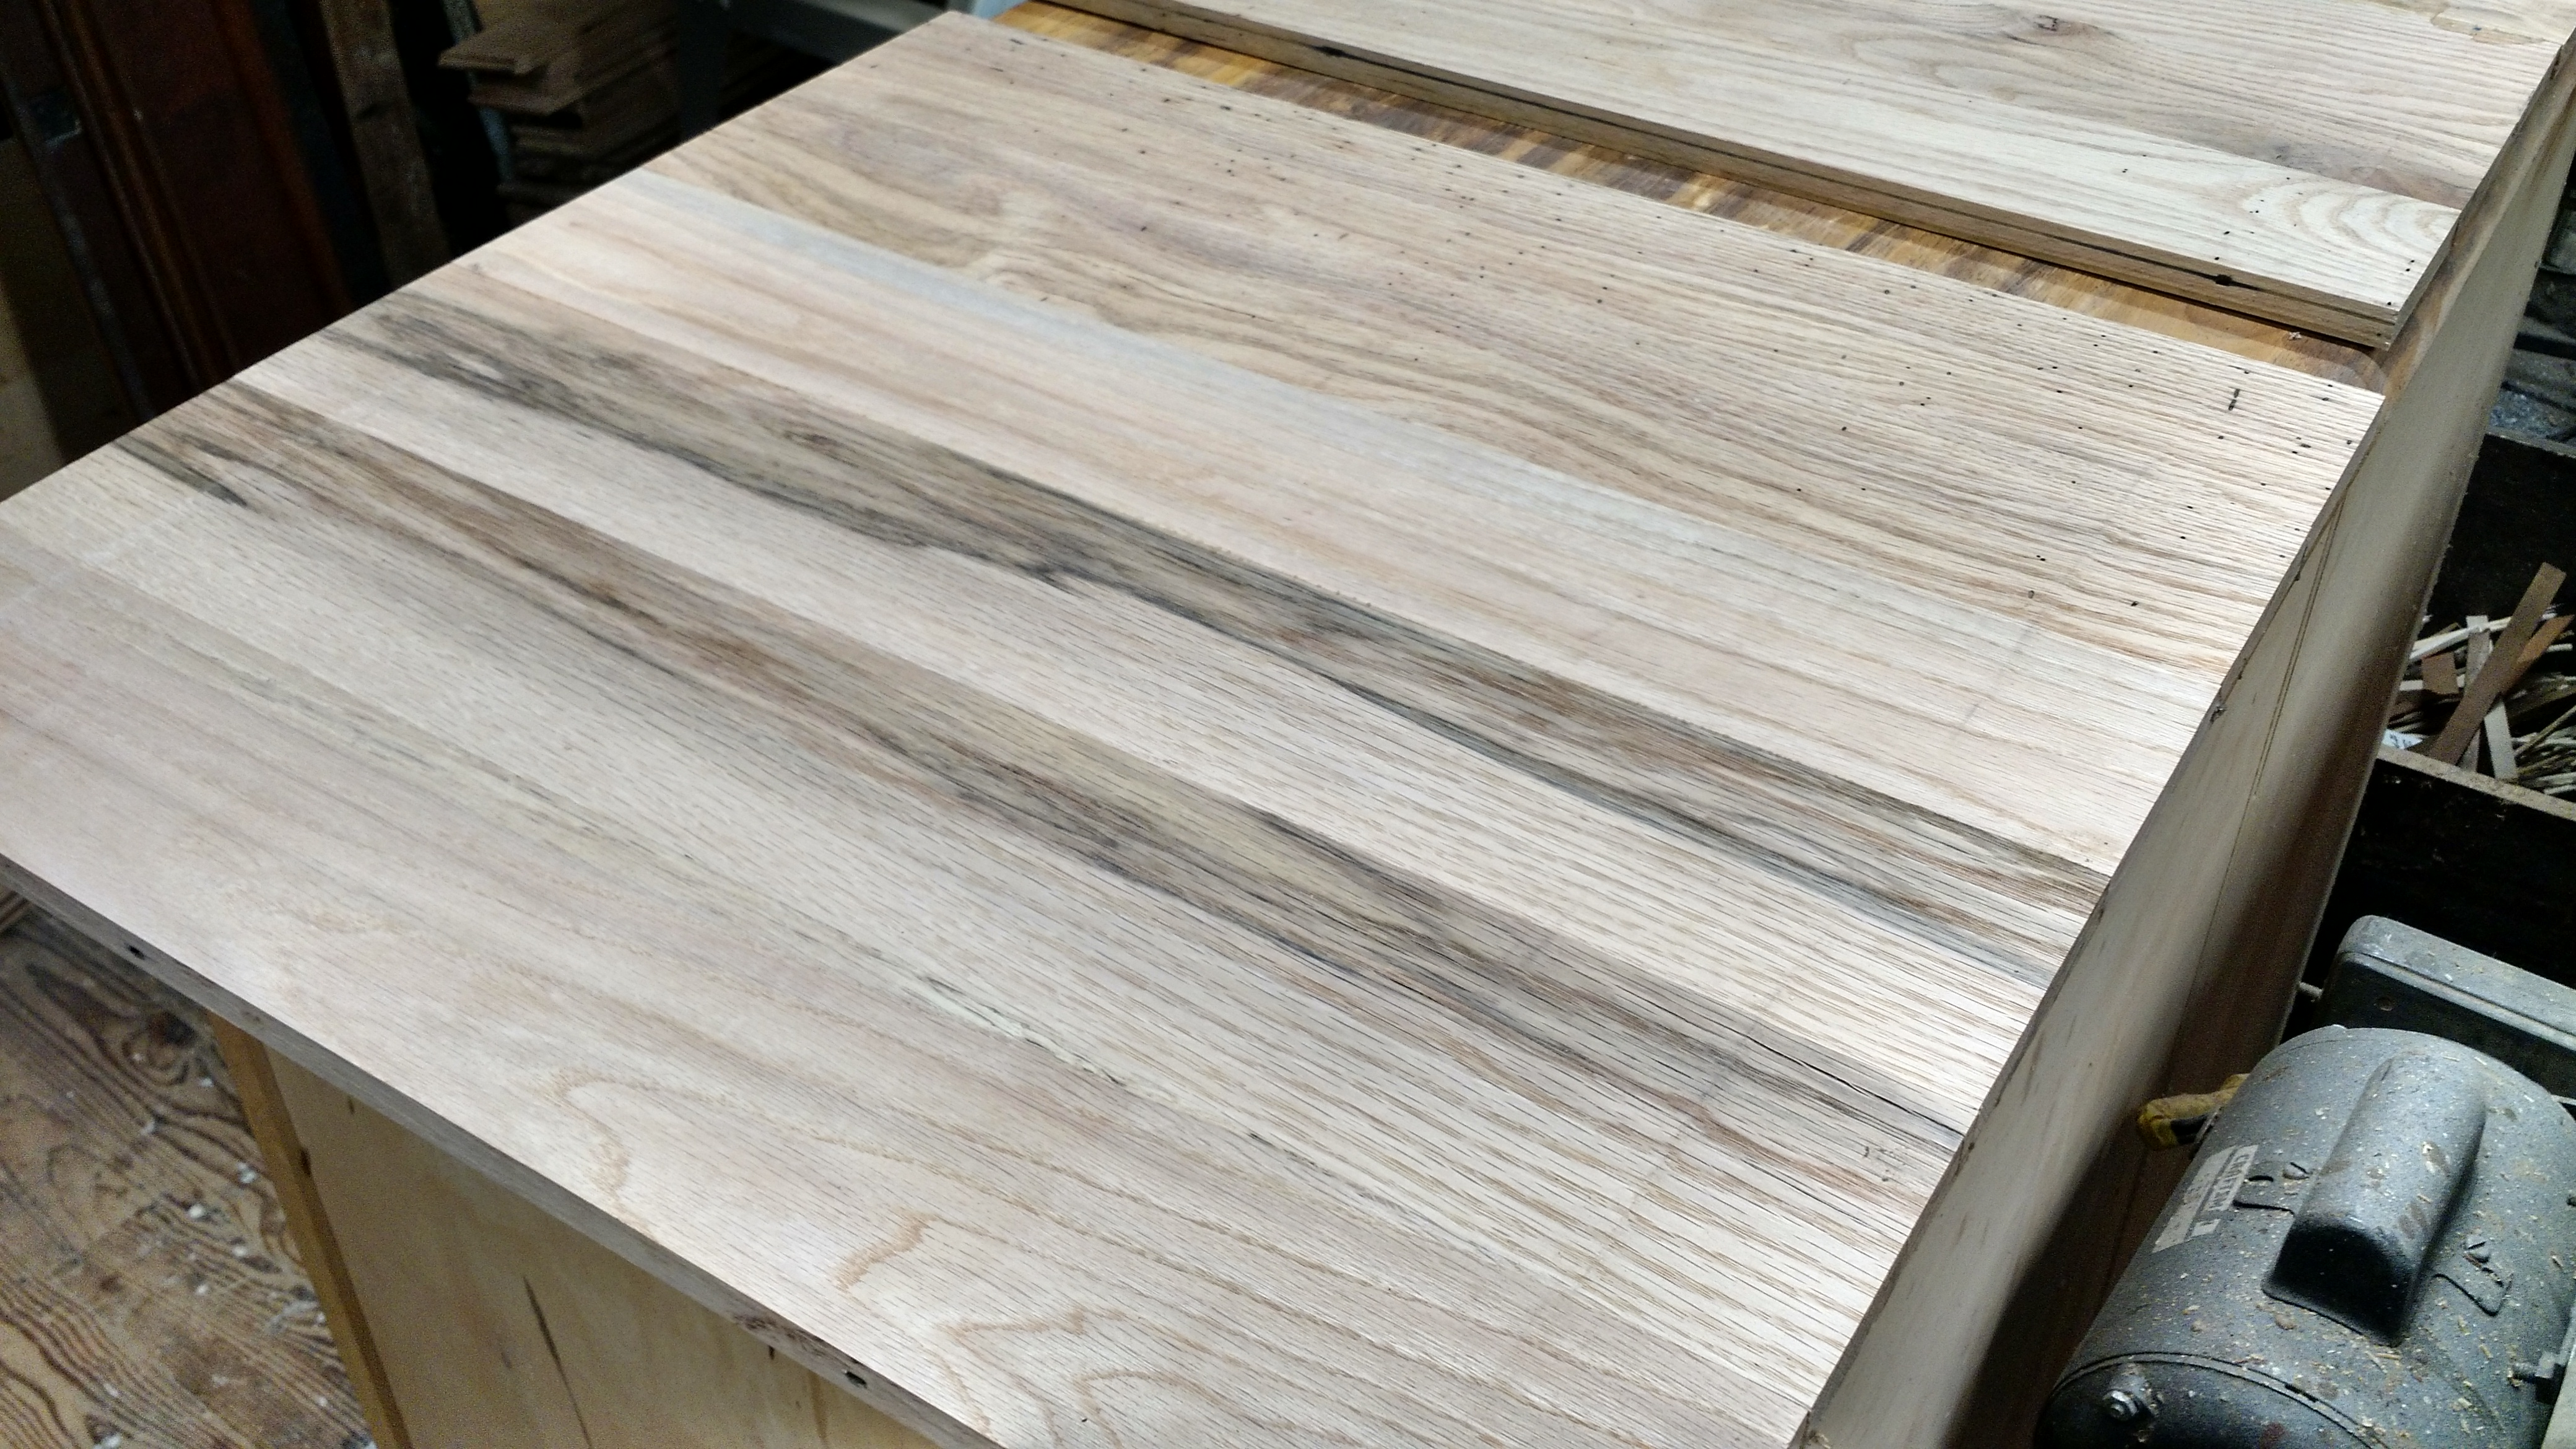 Picture of Planing Old Flooring Sux